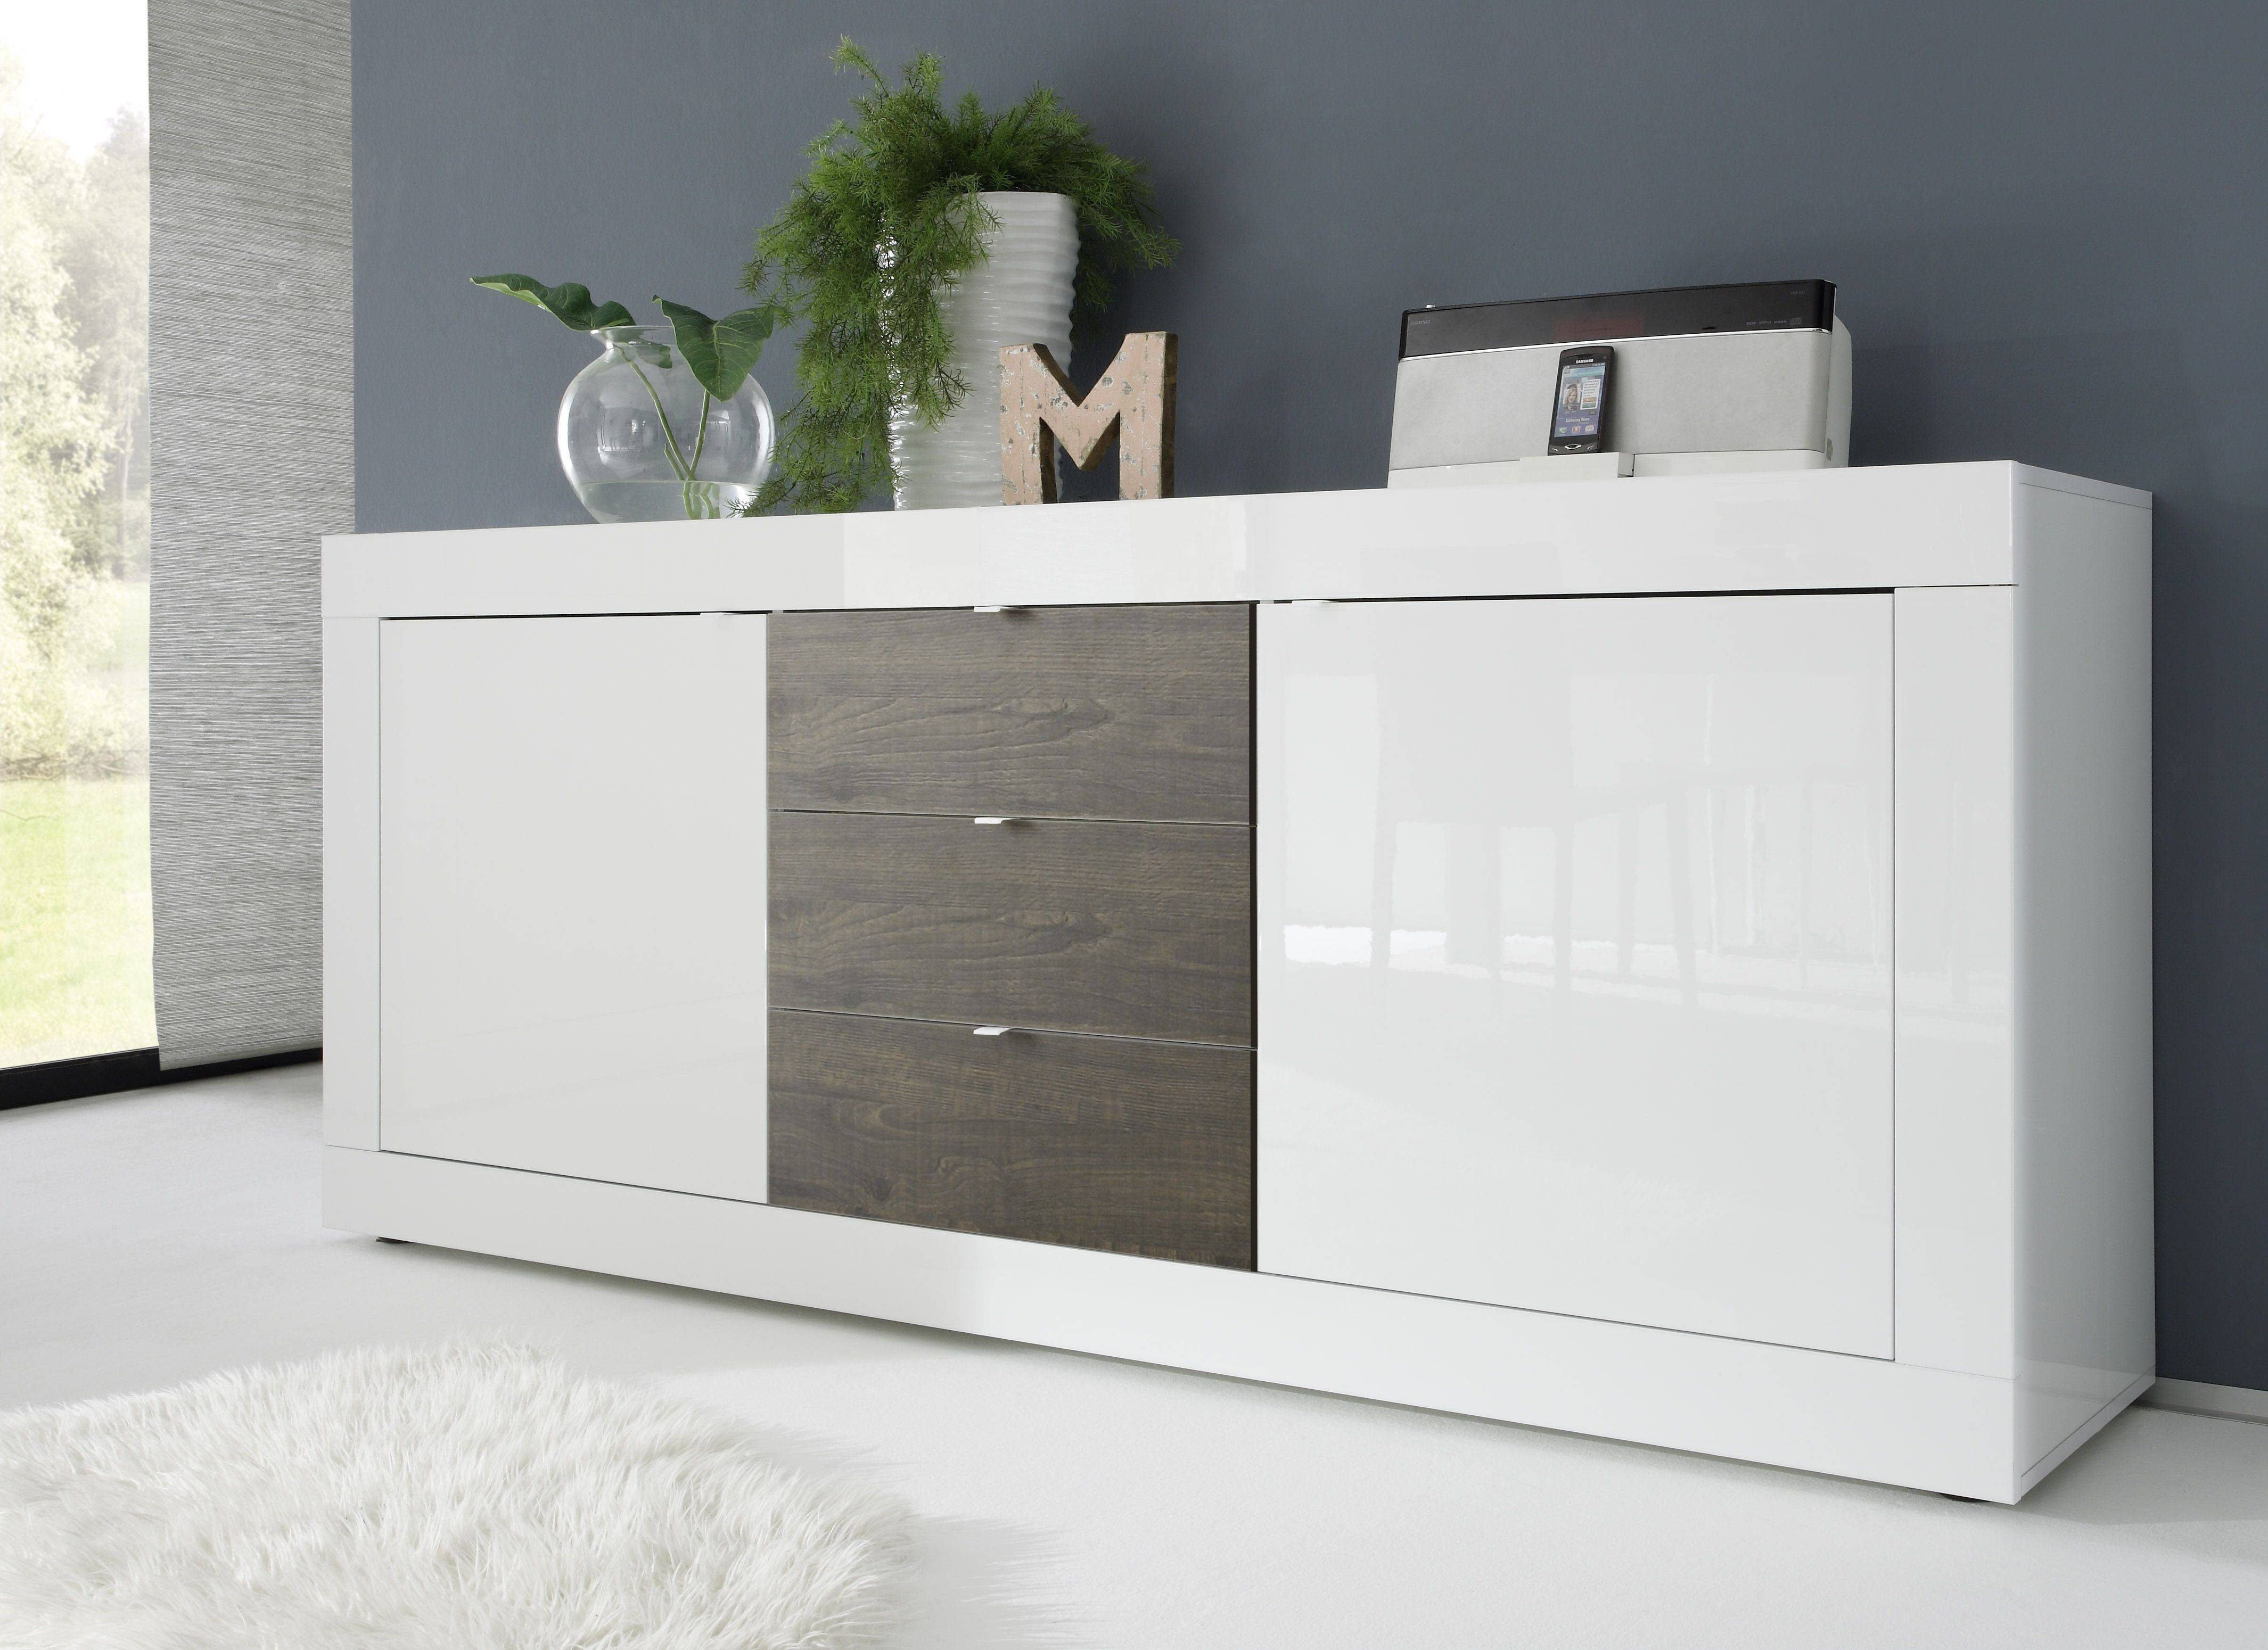 Dolcevita Ii White Gloss Sideboard - Sideboards - Sena Home Furniture regarding High Gloss Sideboards (Image 11 of 30)